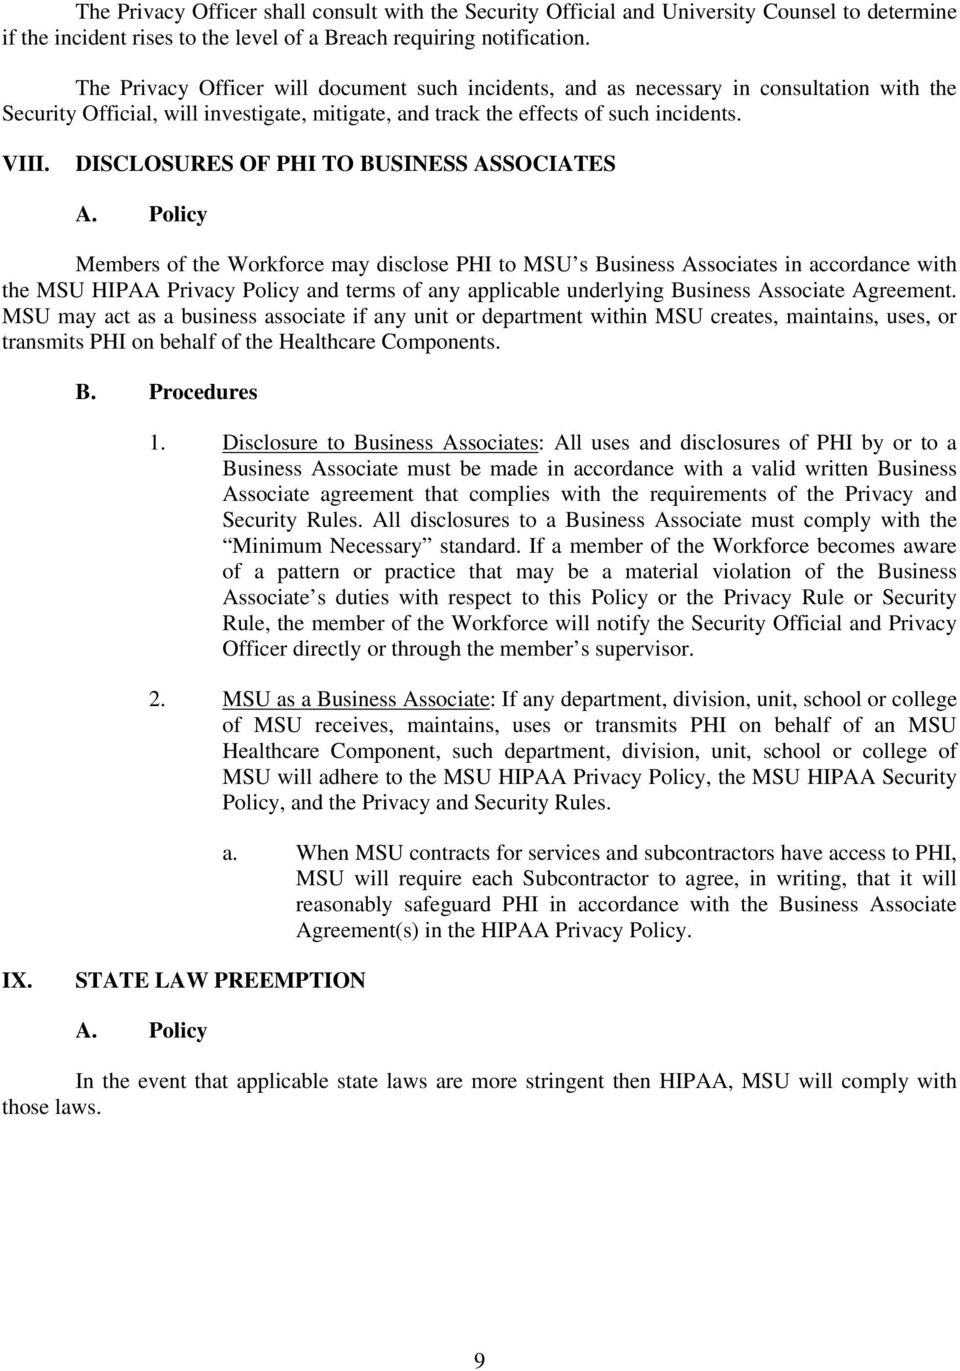 DISCLOSURES OF PHI TO BUSINESS ASSOCIATES A.